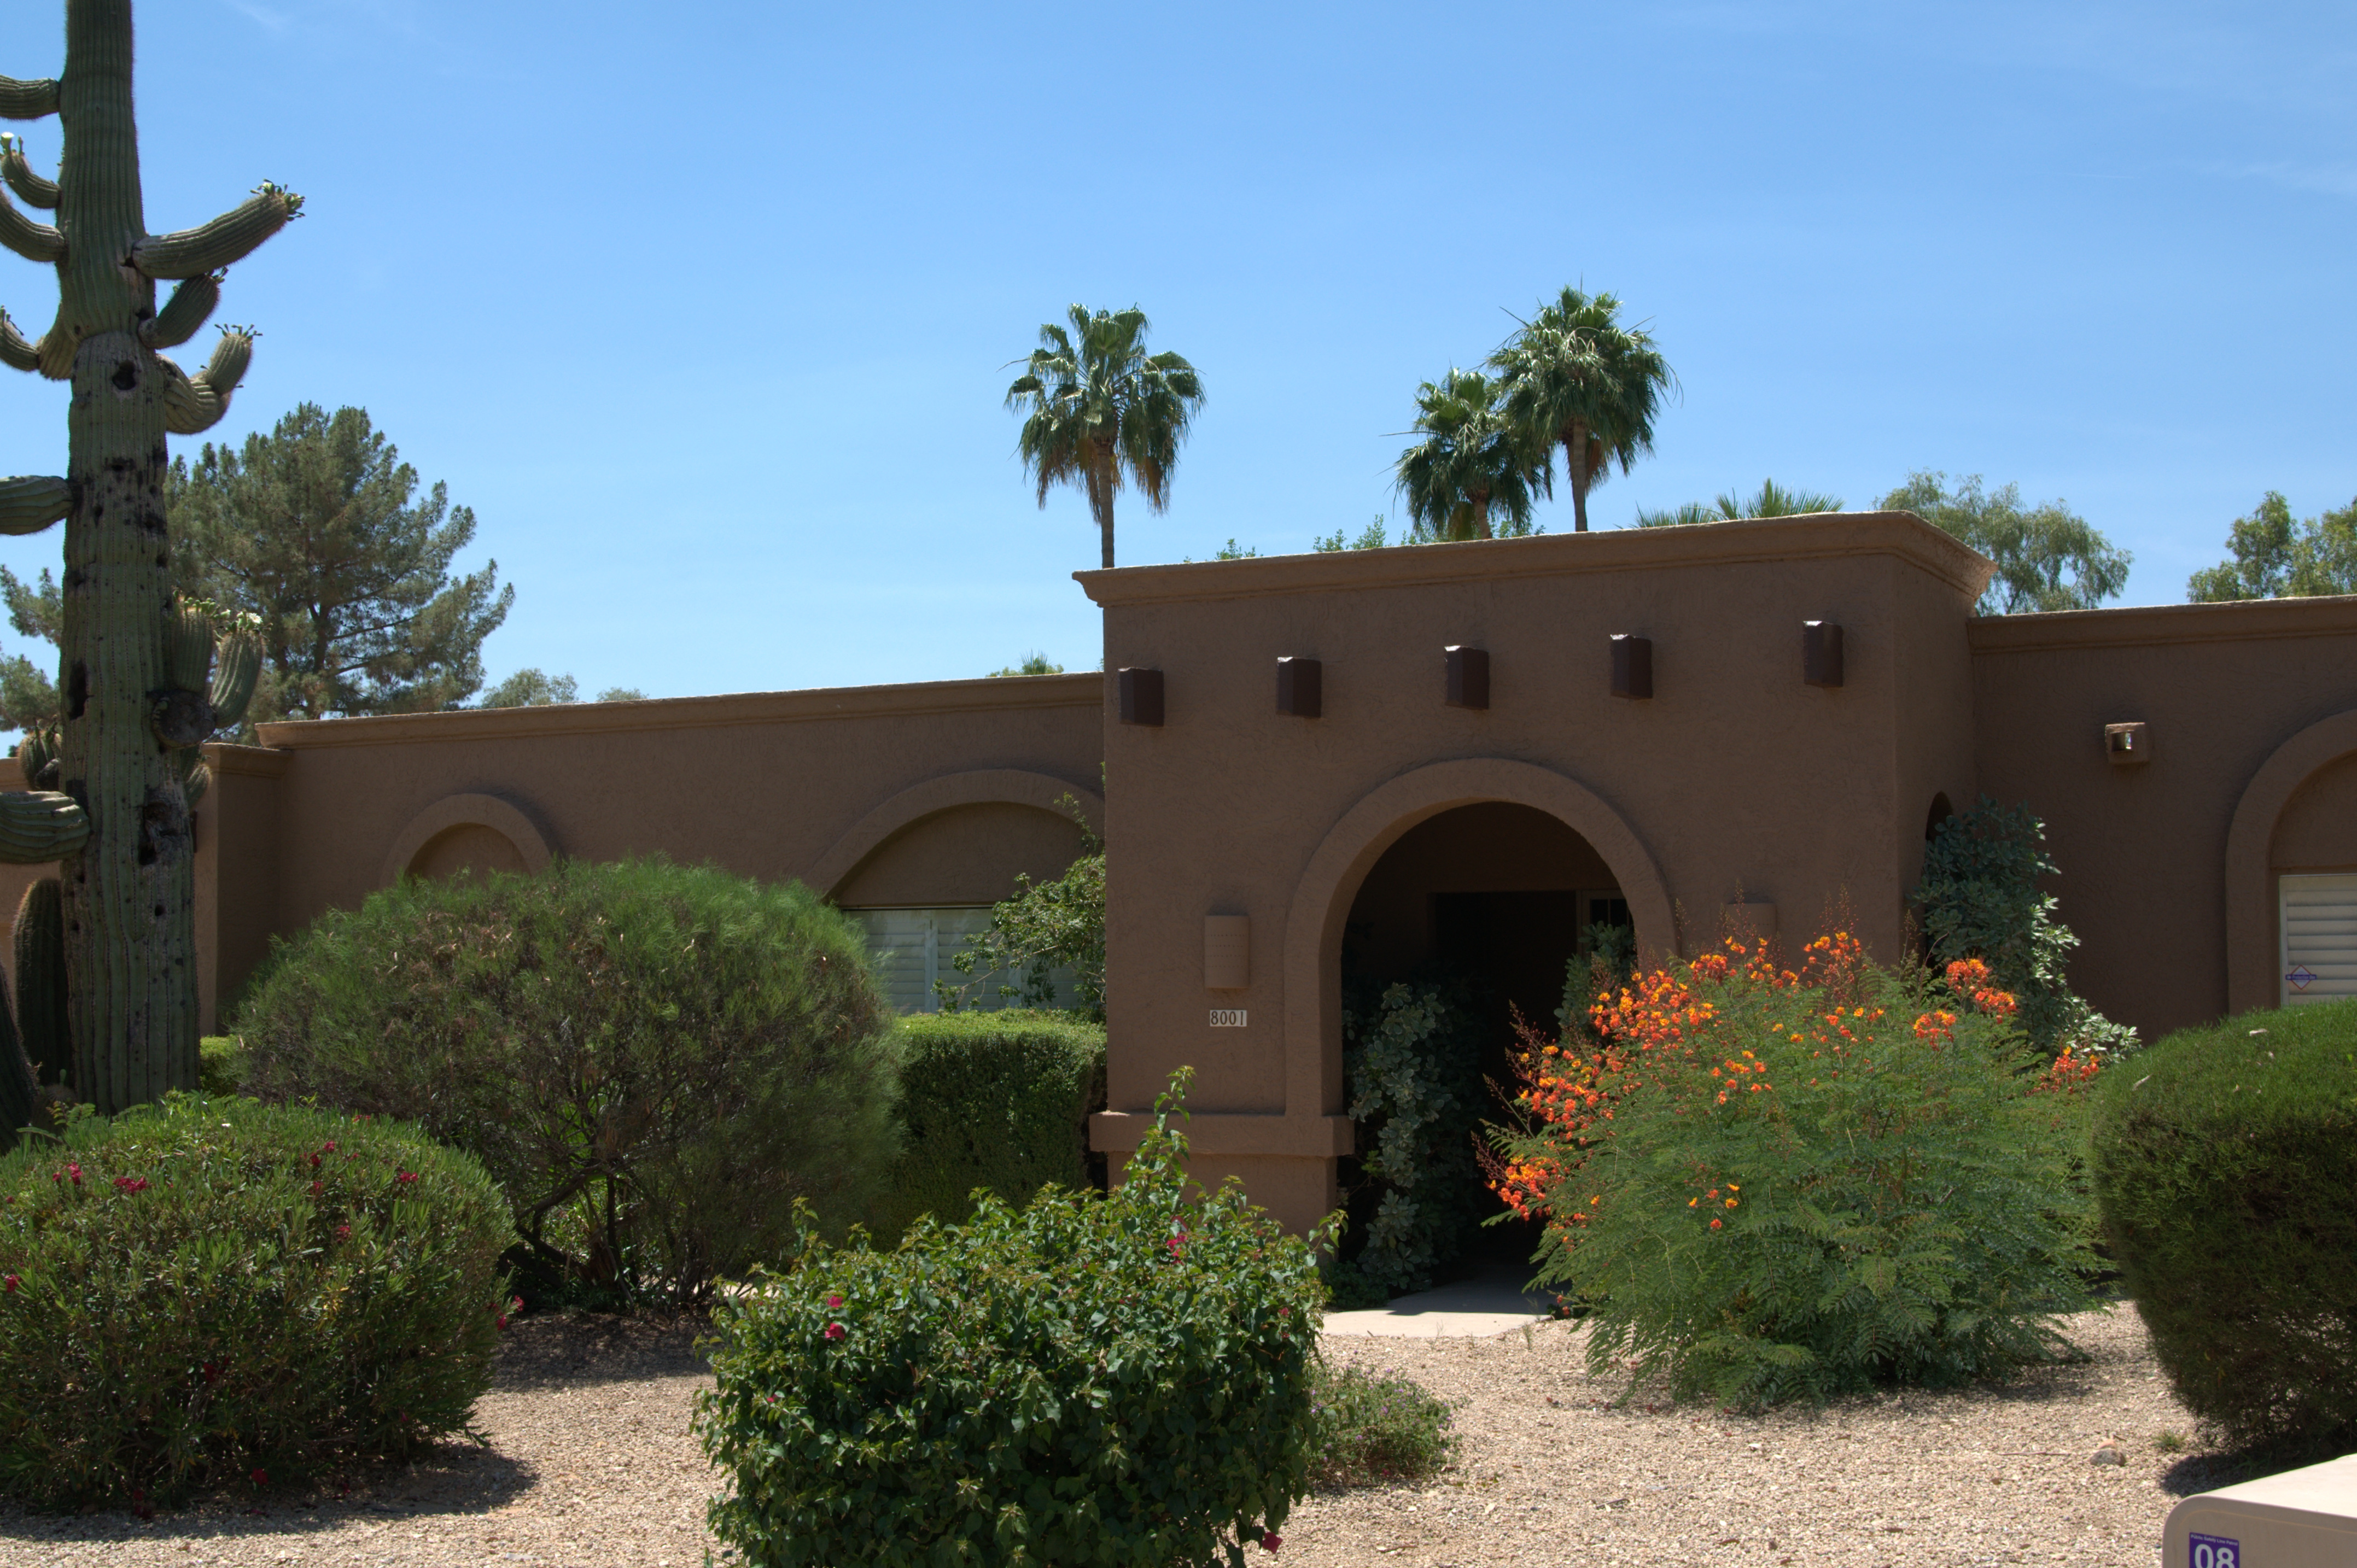 The McCormick Ranch Subdivision Series: Tierra Feliz